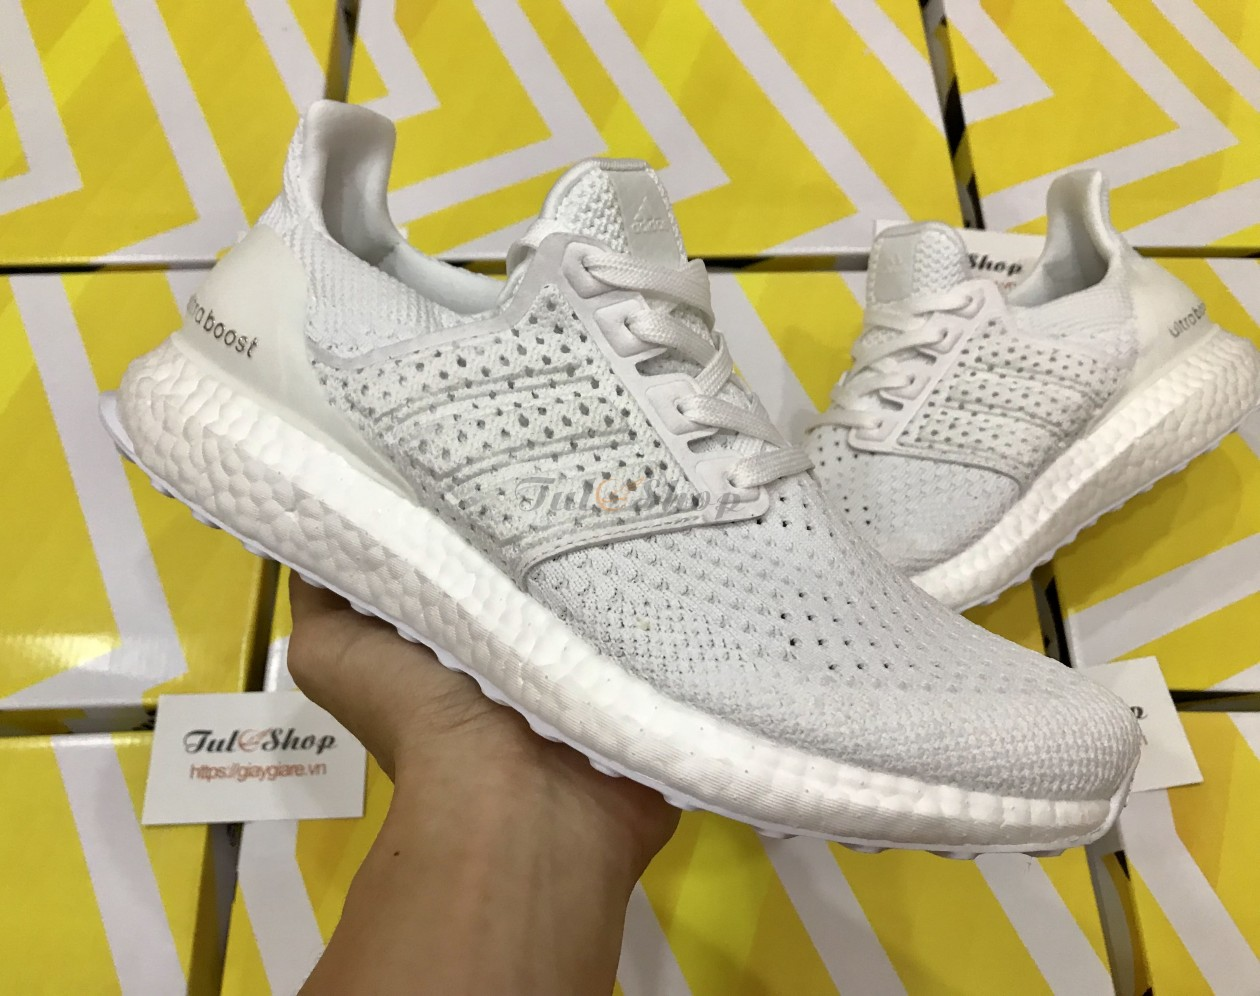 Adidas ultra boost 4.0 Clima trắng nam, nữ rep 1:1